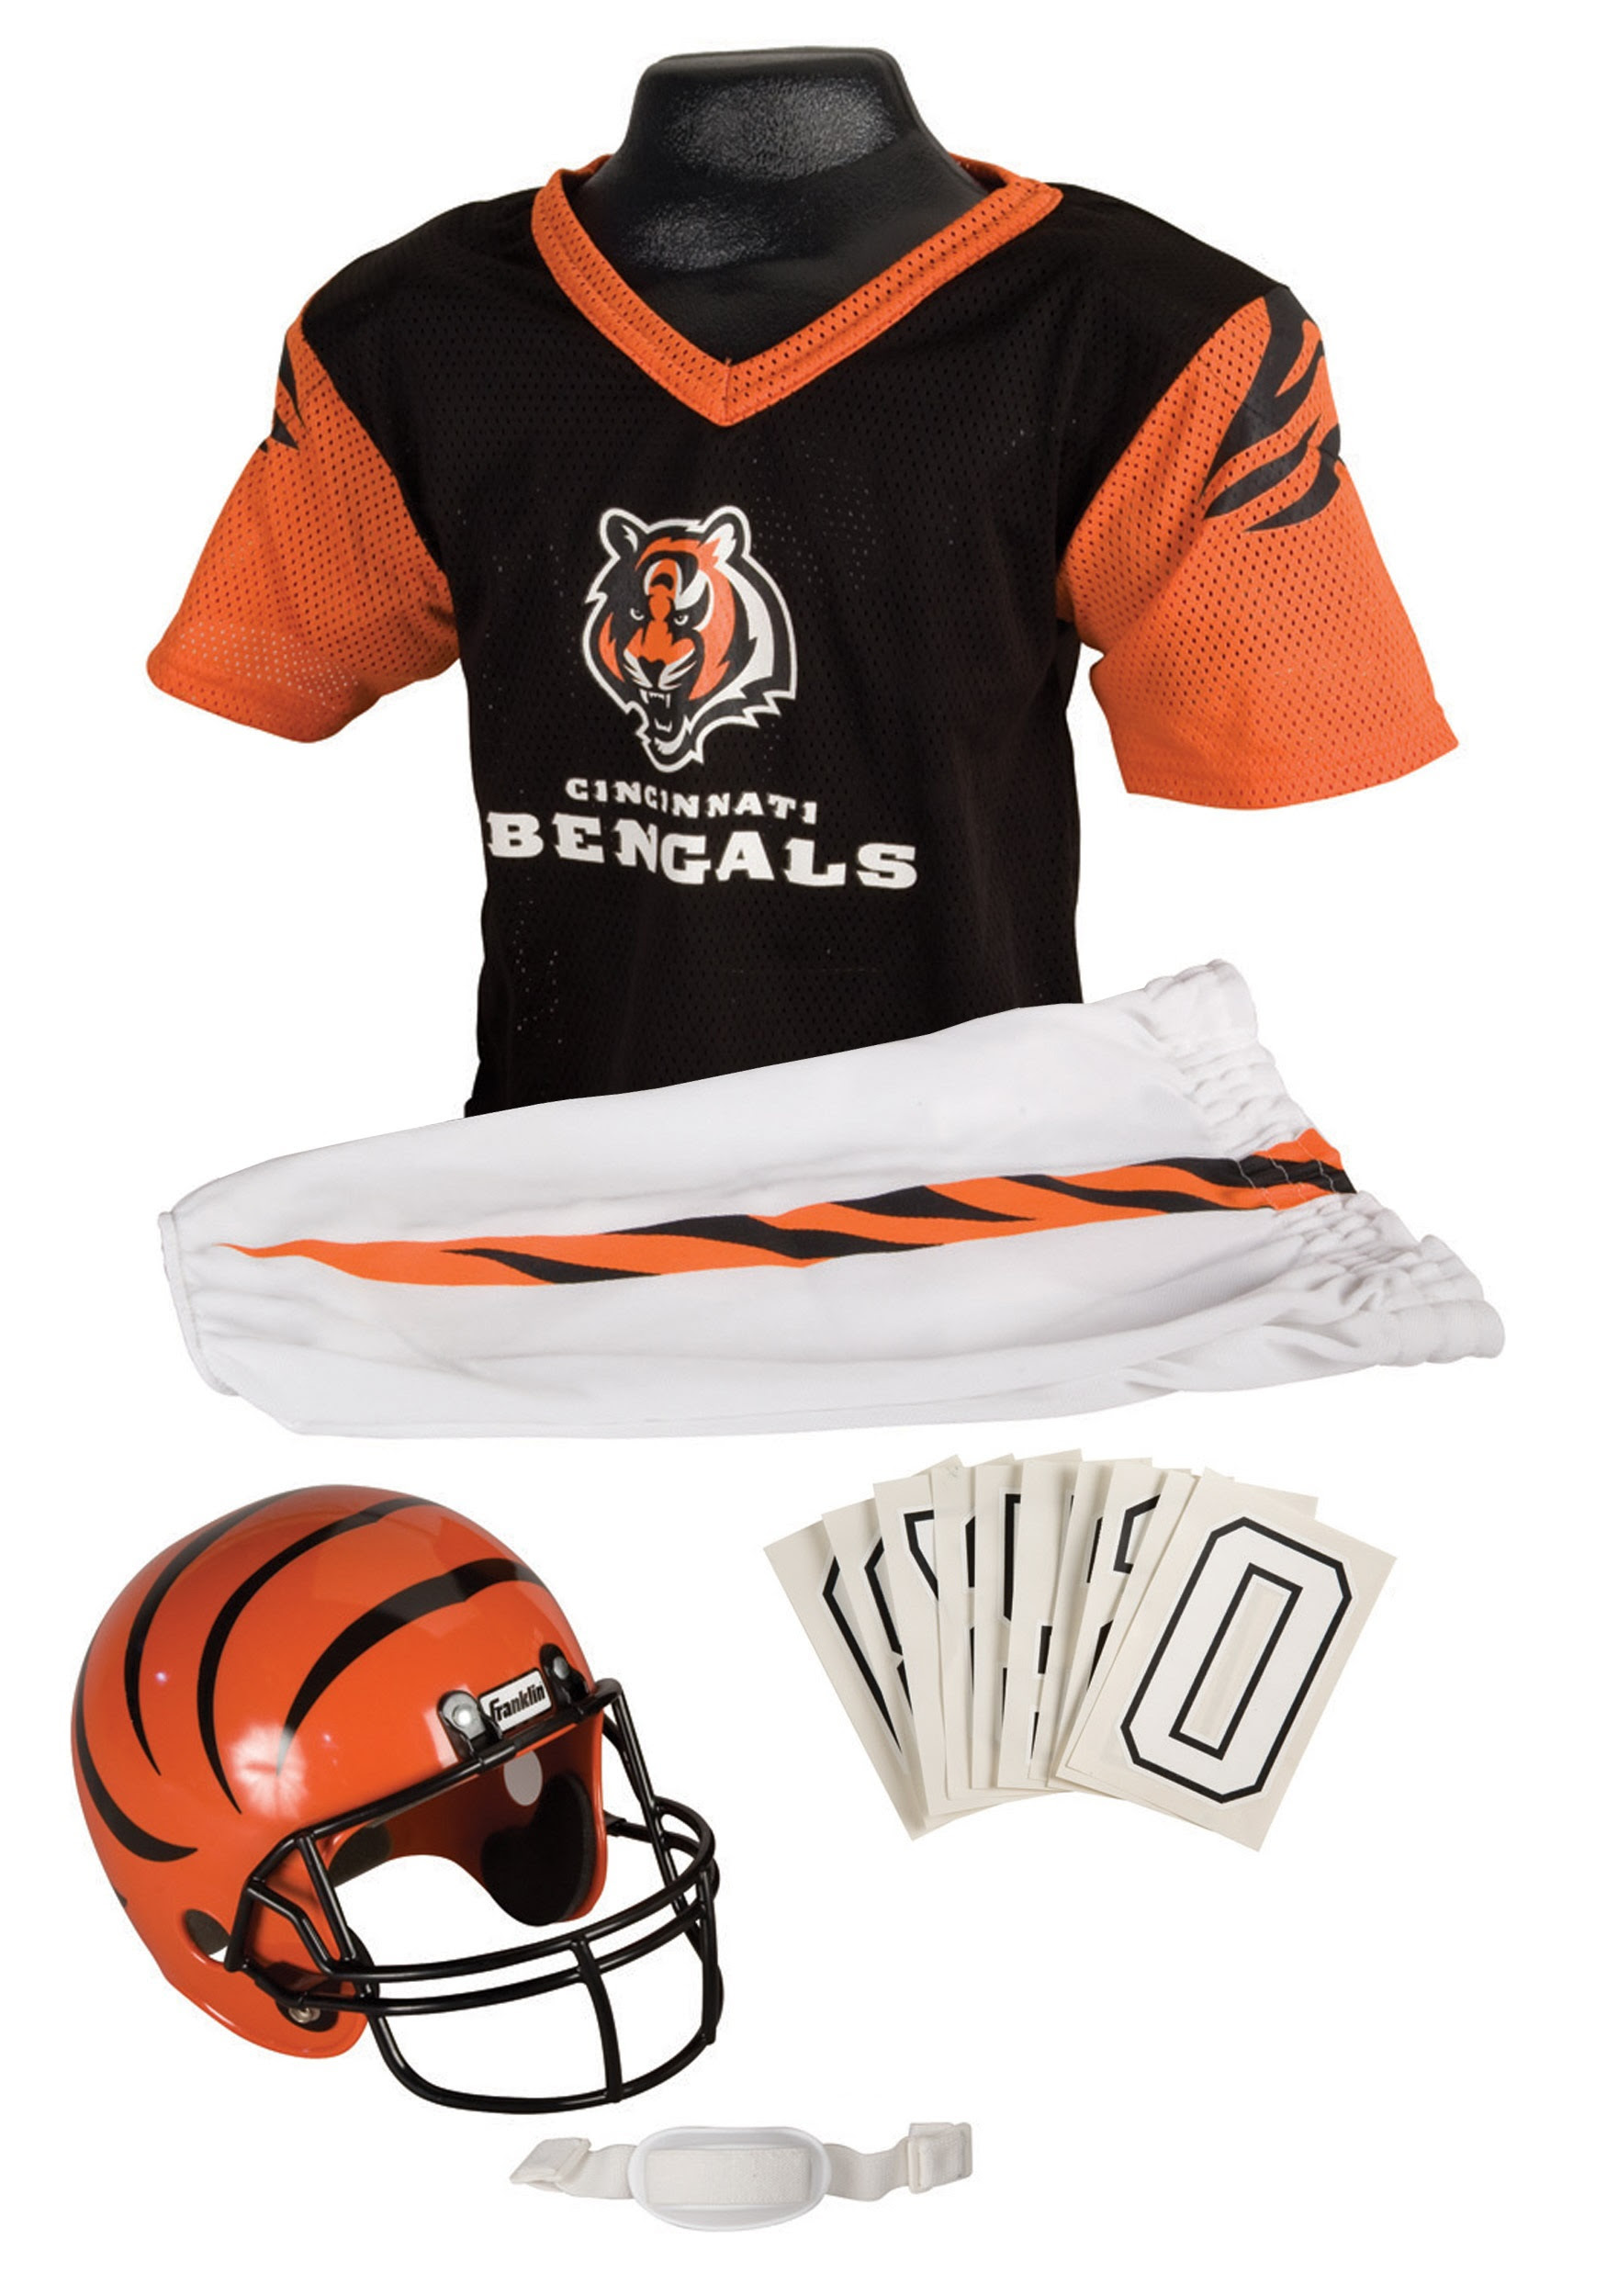 NFL Bengals Kids Uniform  Cincinnati Bengals Football Costume